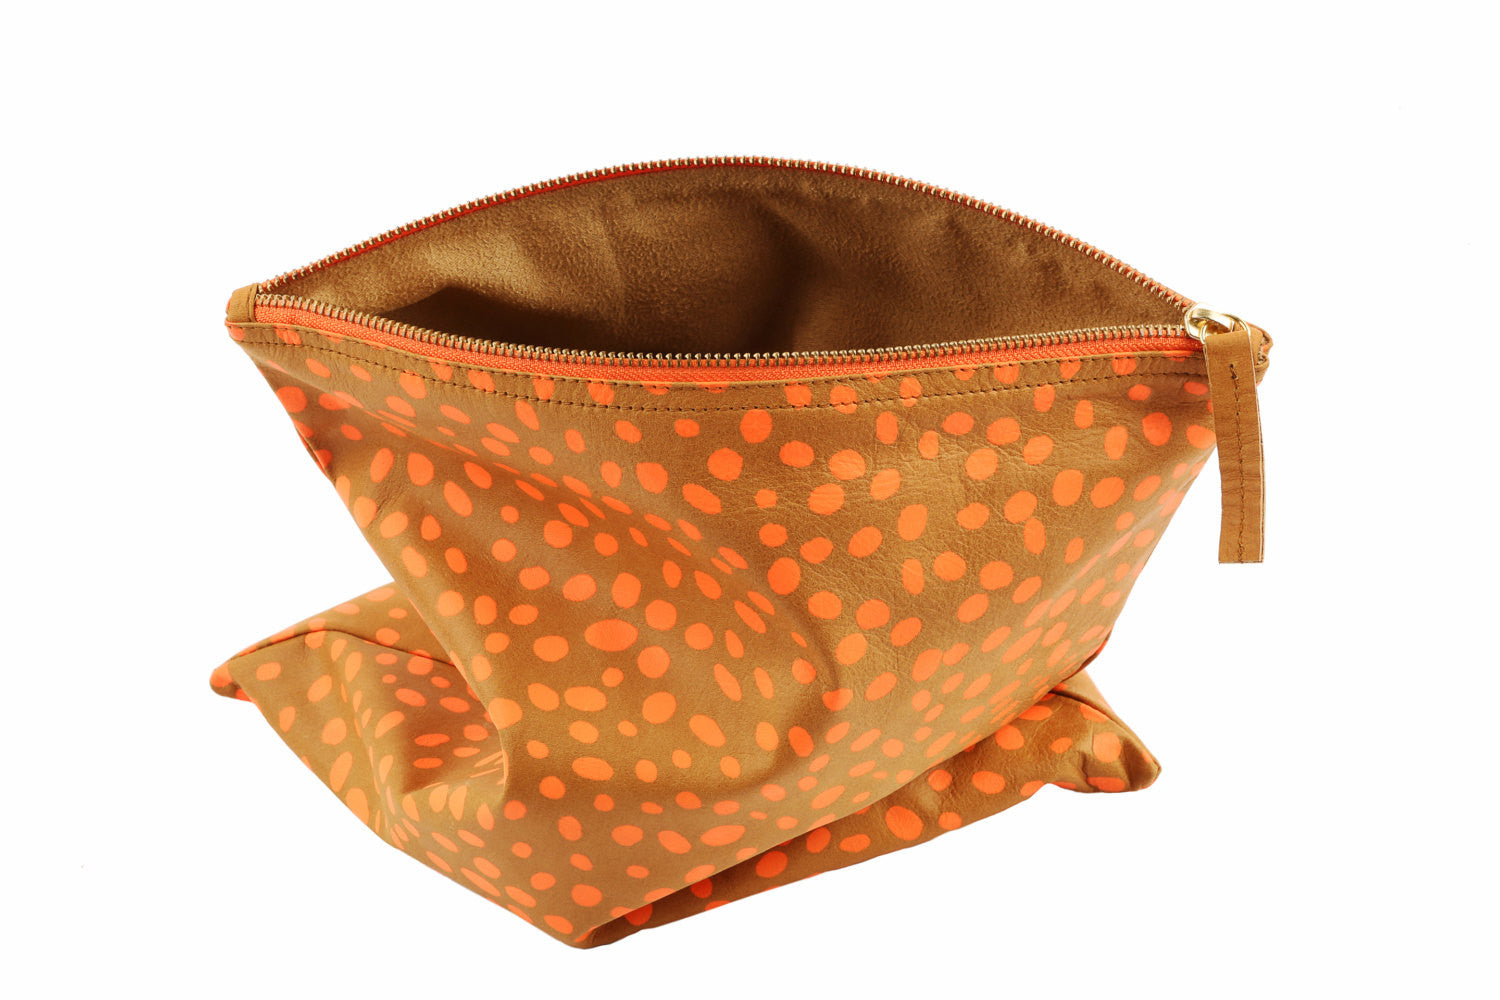 Dalmatian print leather bag fold over clutch, Dalmatian Bag, Leather Dalmatian print clutch, Dalmatian clutch, Tan and orange dalmatian bag